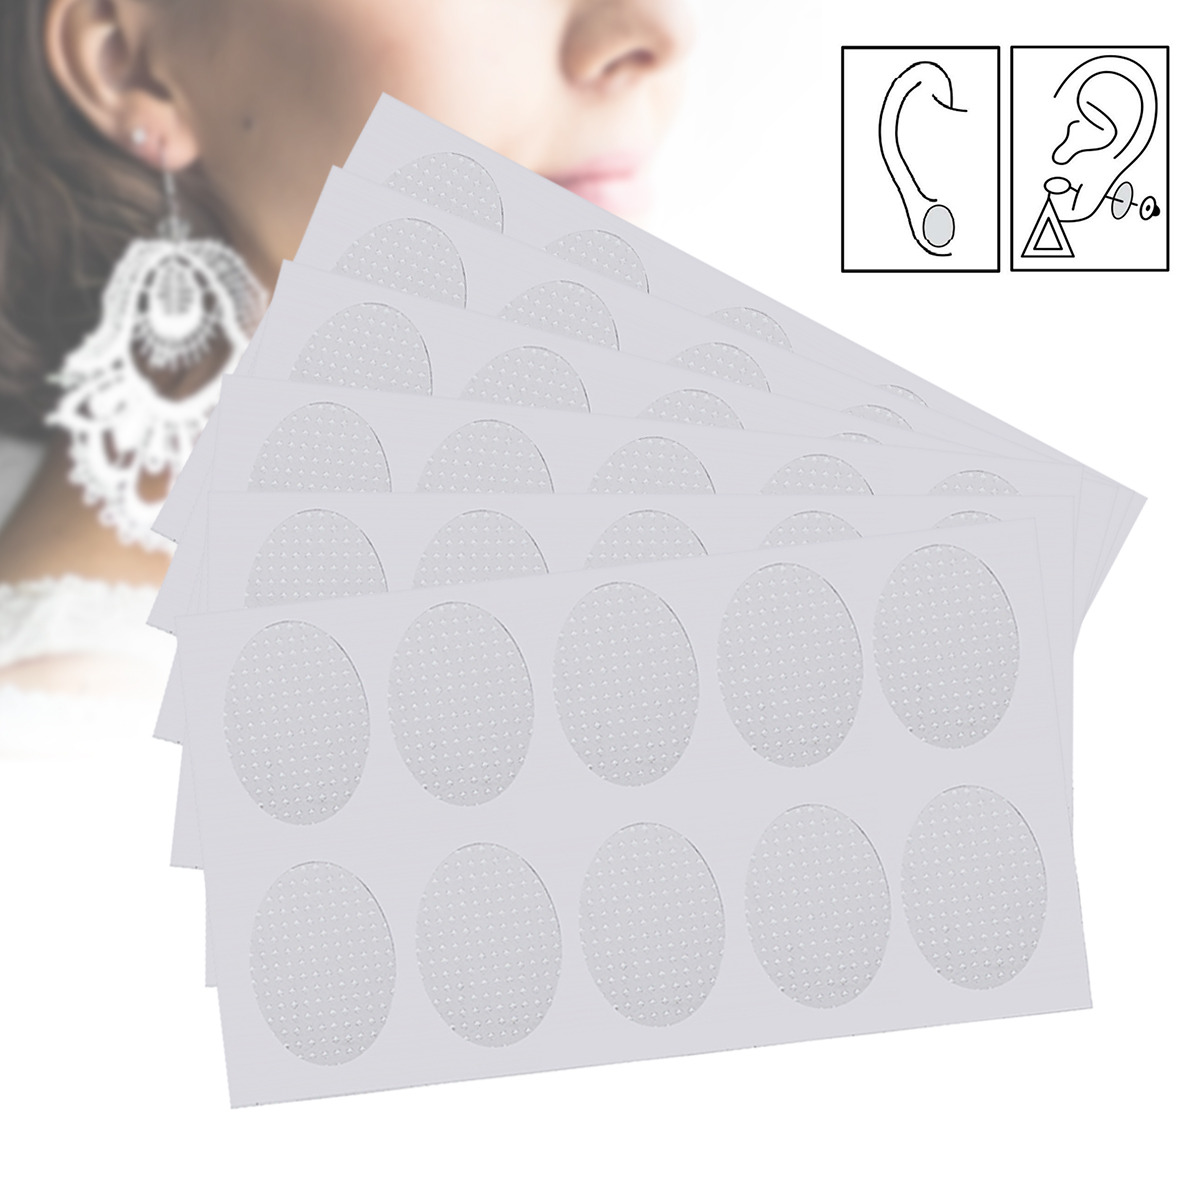 60pcs/6 Sheets Ear Support Patches Ear Lobe Support Patches Anti - Rips/Tears Relieve Strain From Heavy Earrings